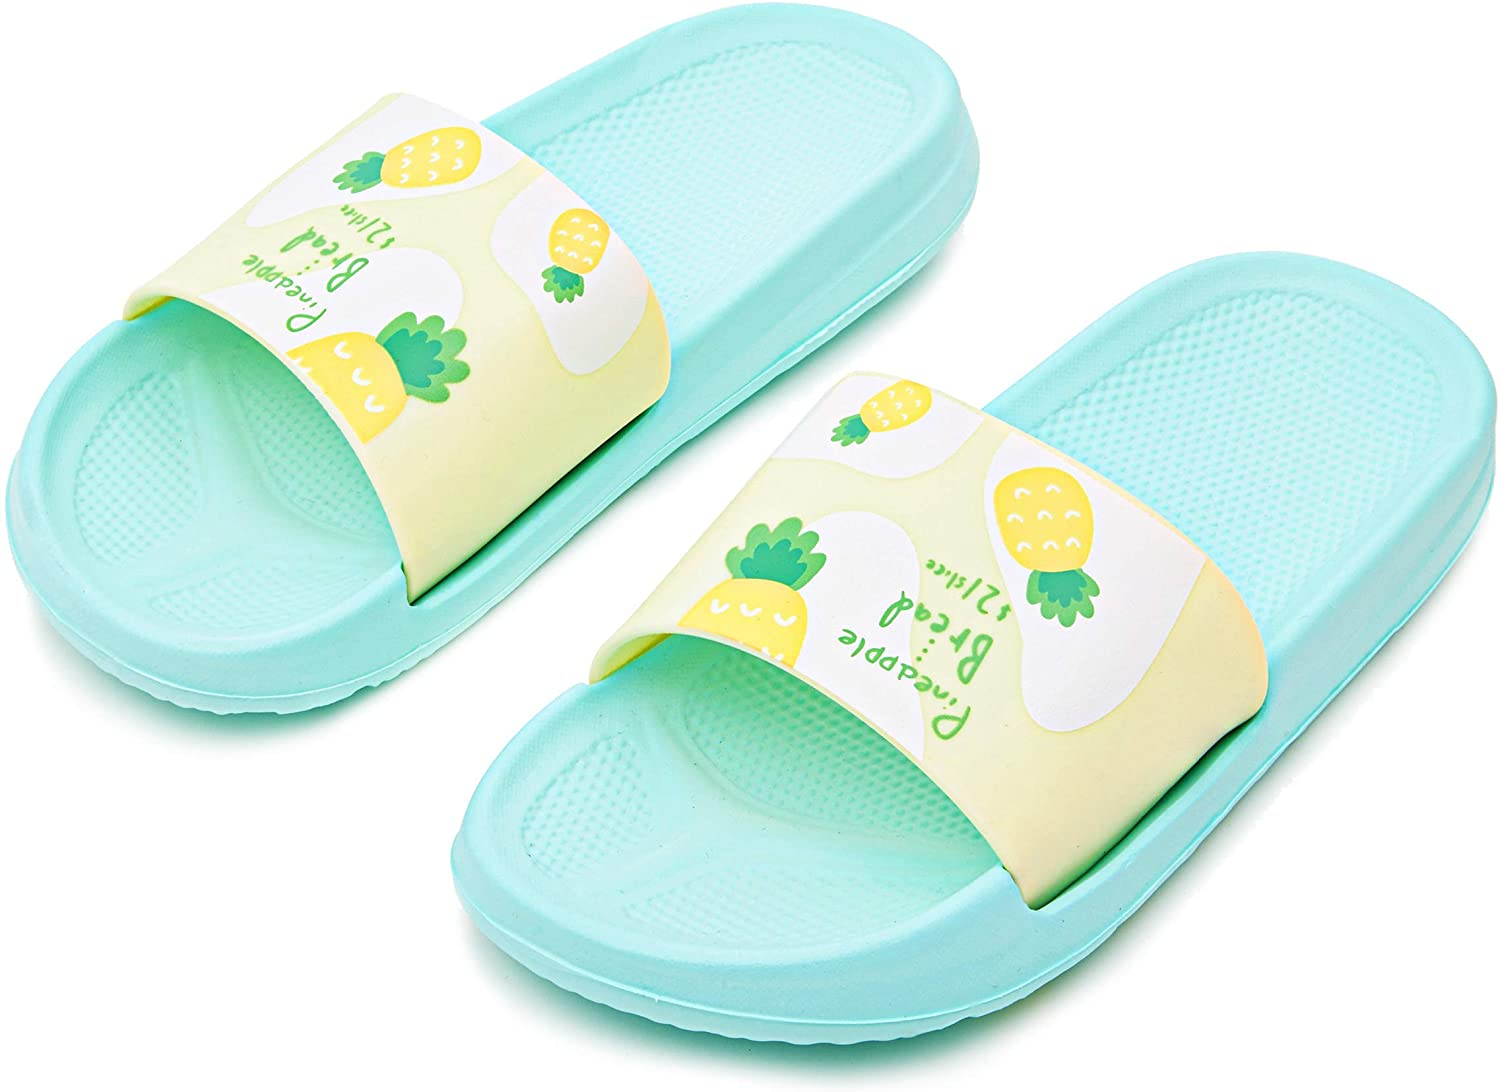 Pineapple Printed Beach Slide Slippers for Women in Green, Yellow